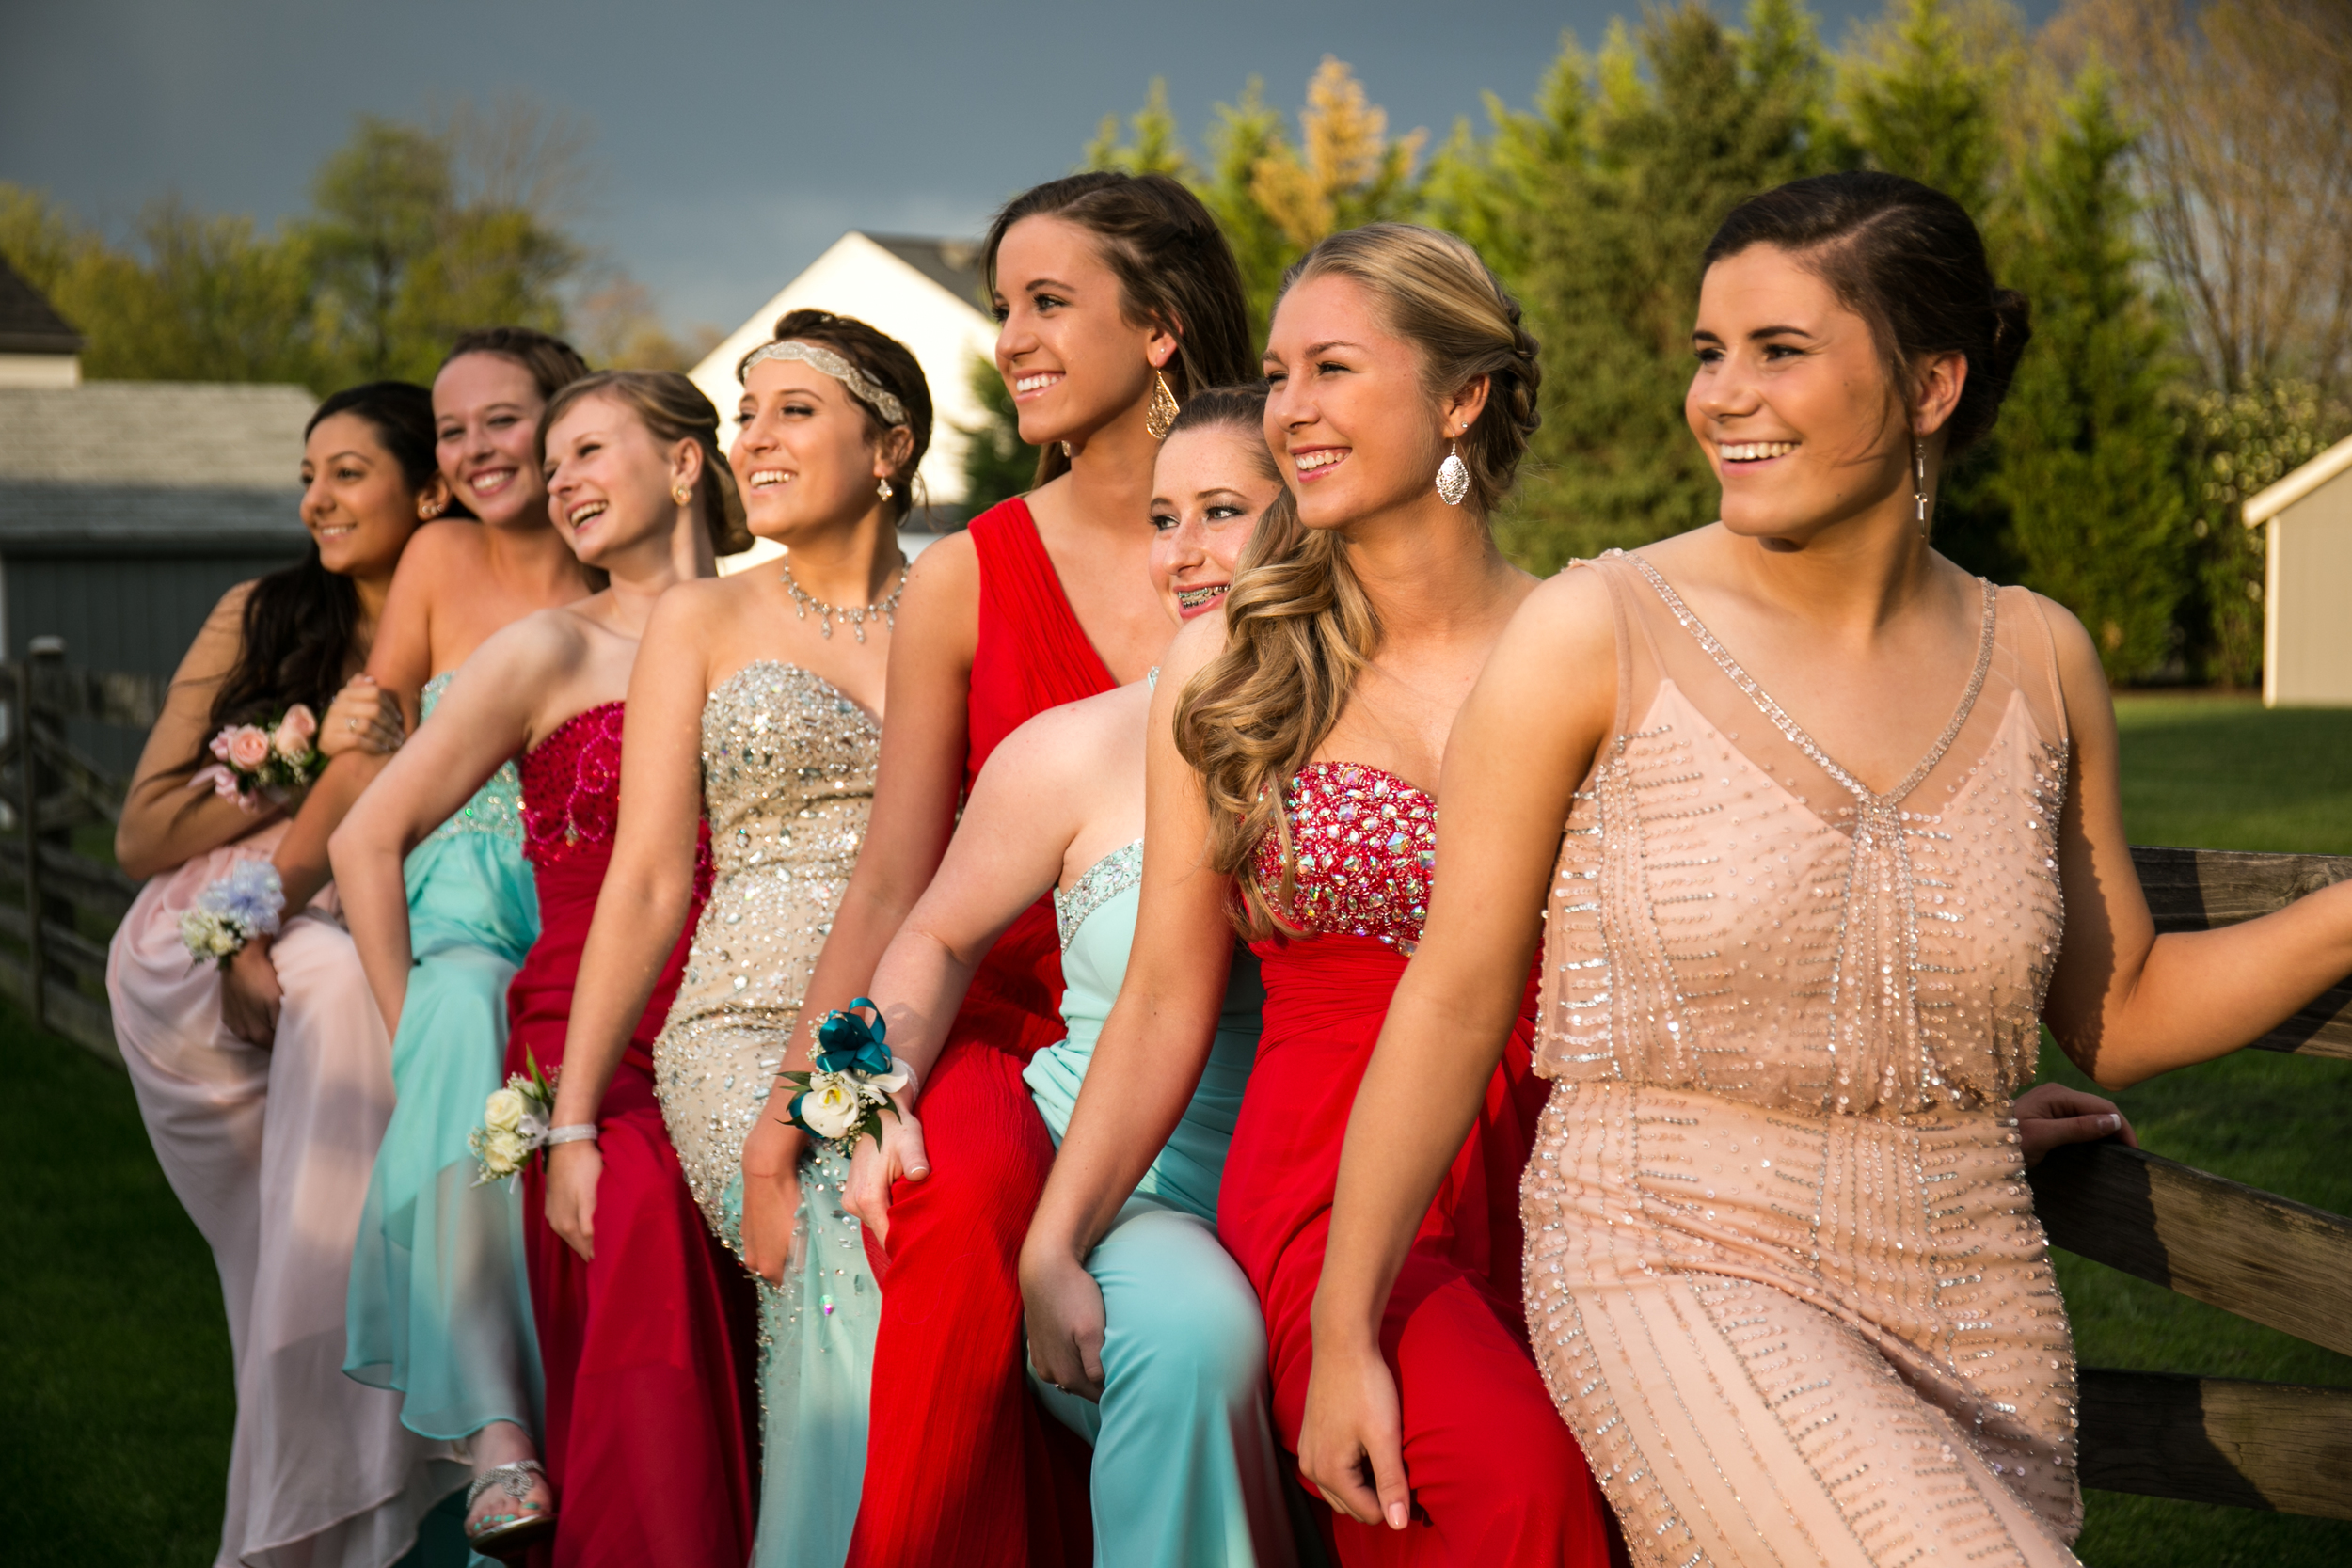 Mount-De-Sales-Pre-Prom-May-2014-36.jpg